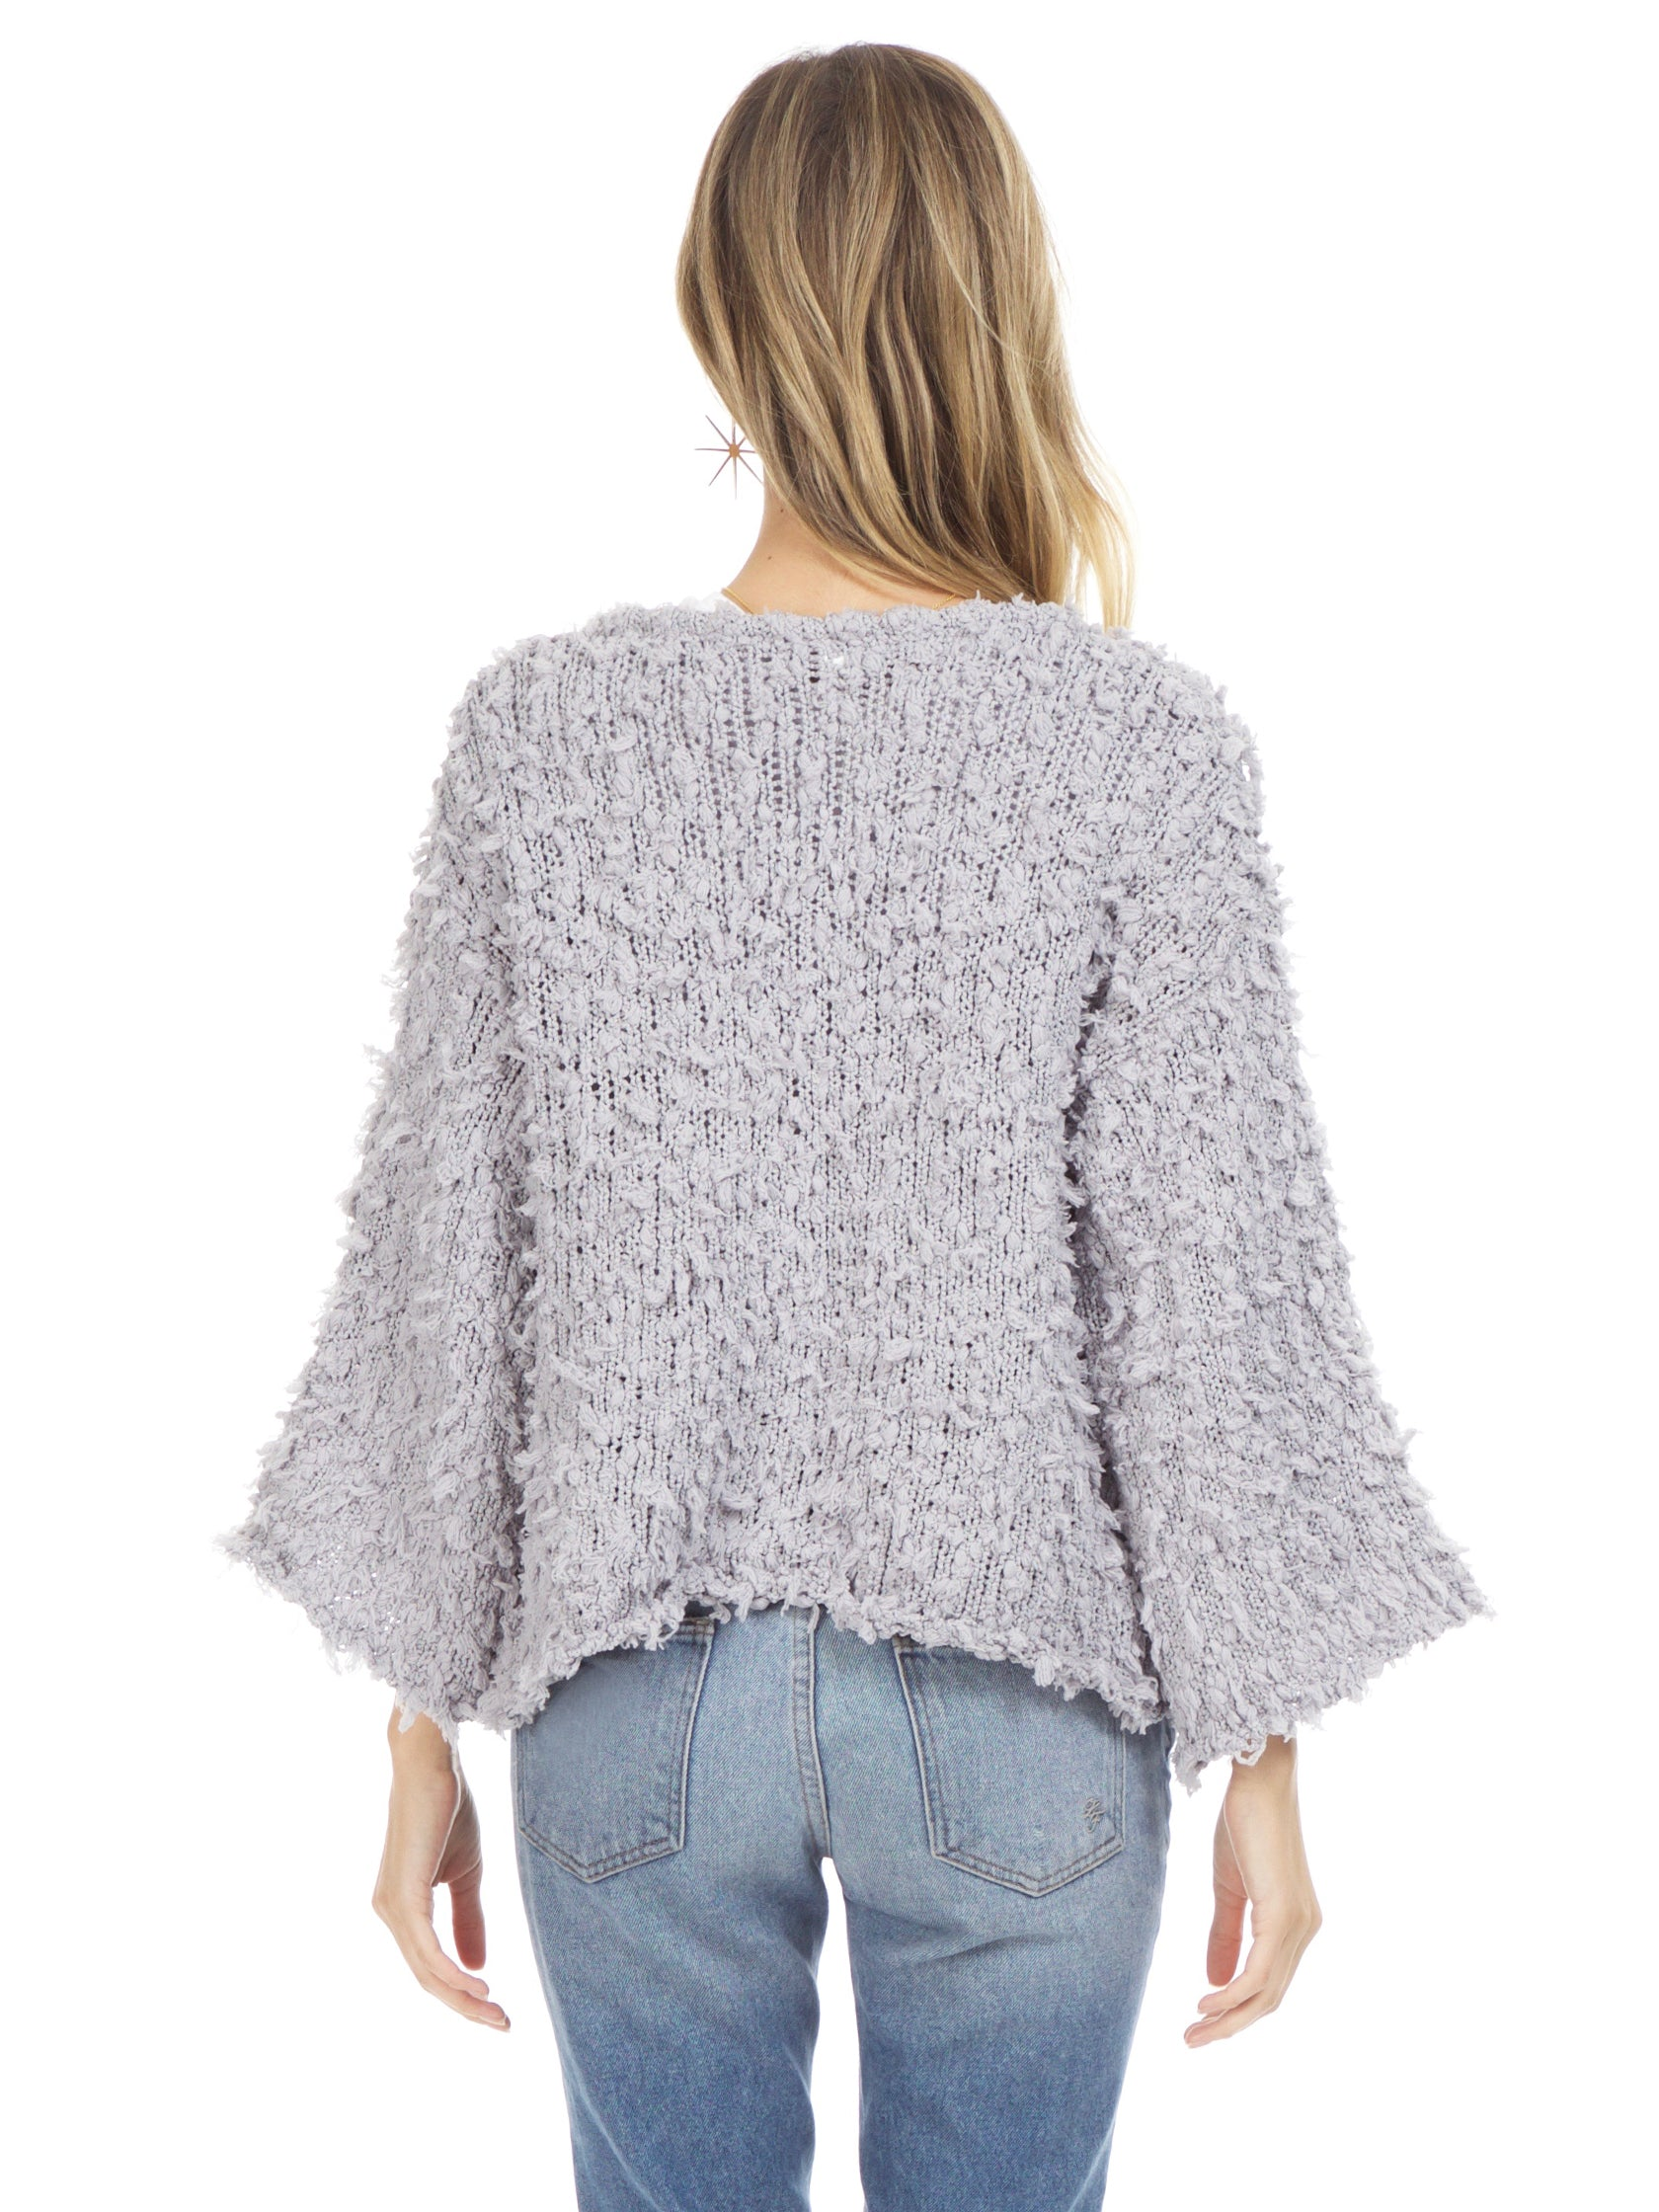 Women outfit in a cardigan rental from Sadie & Sage called Popcorn Knit Cardigan